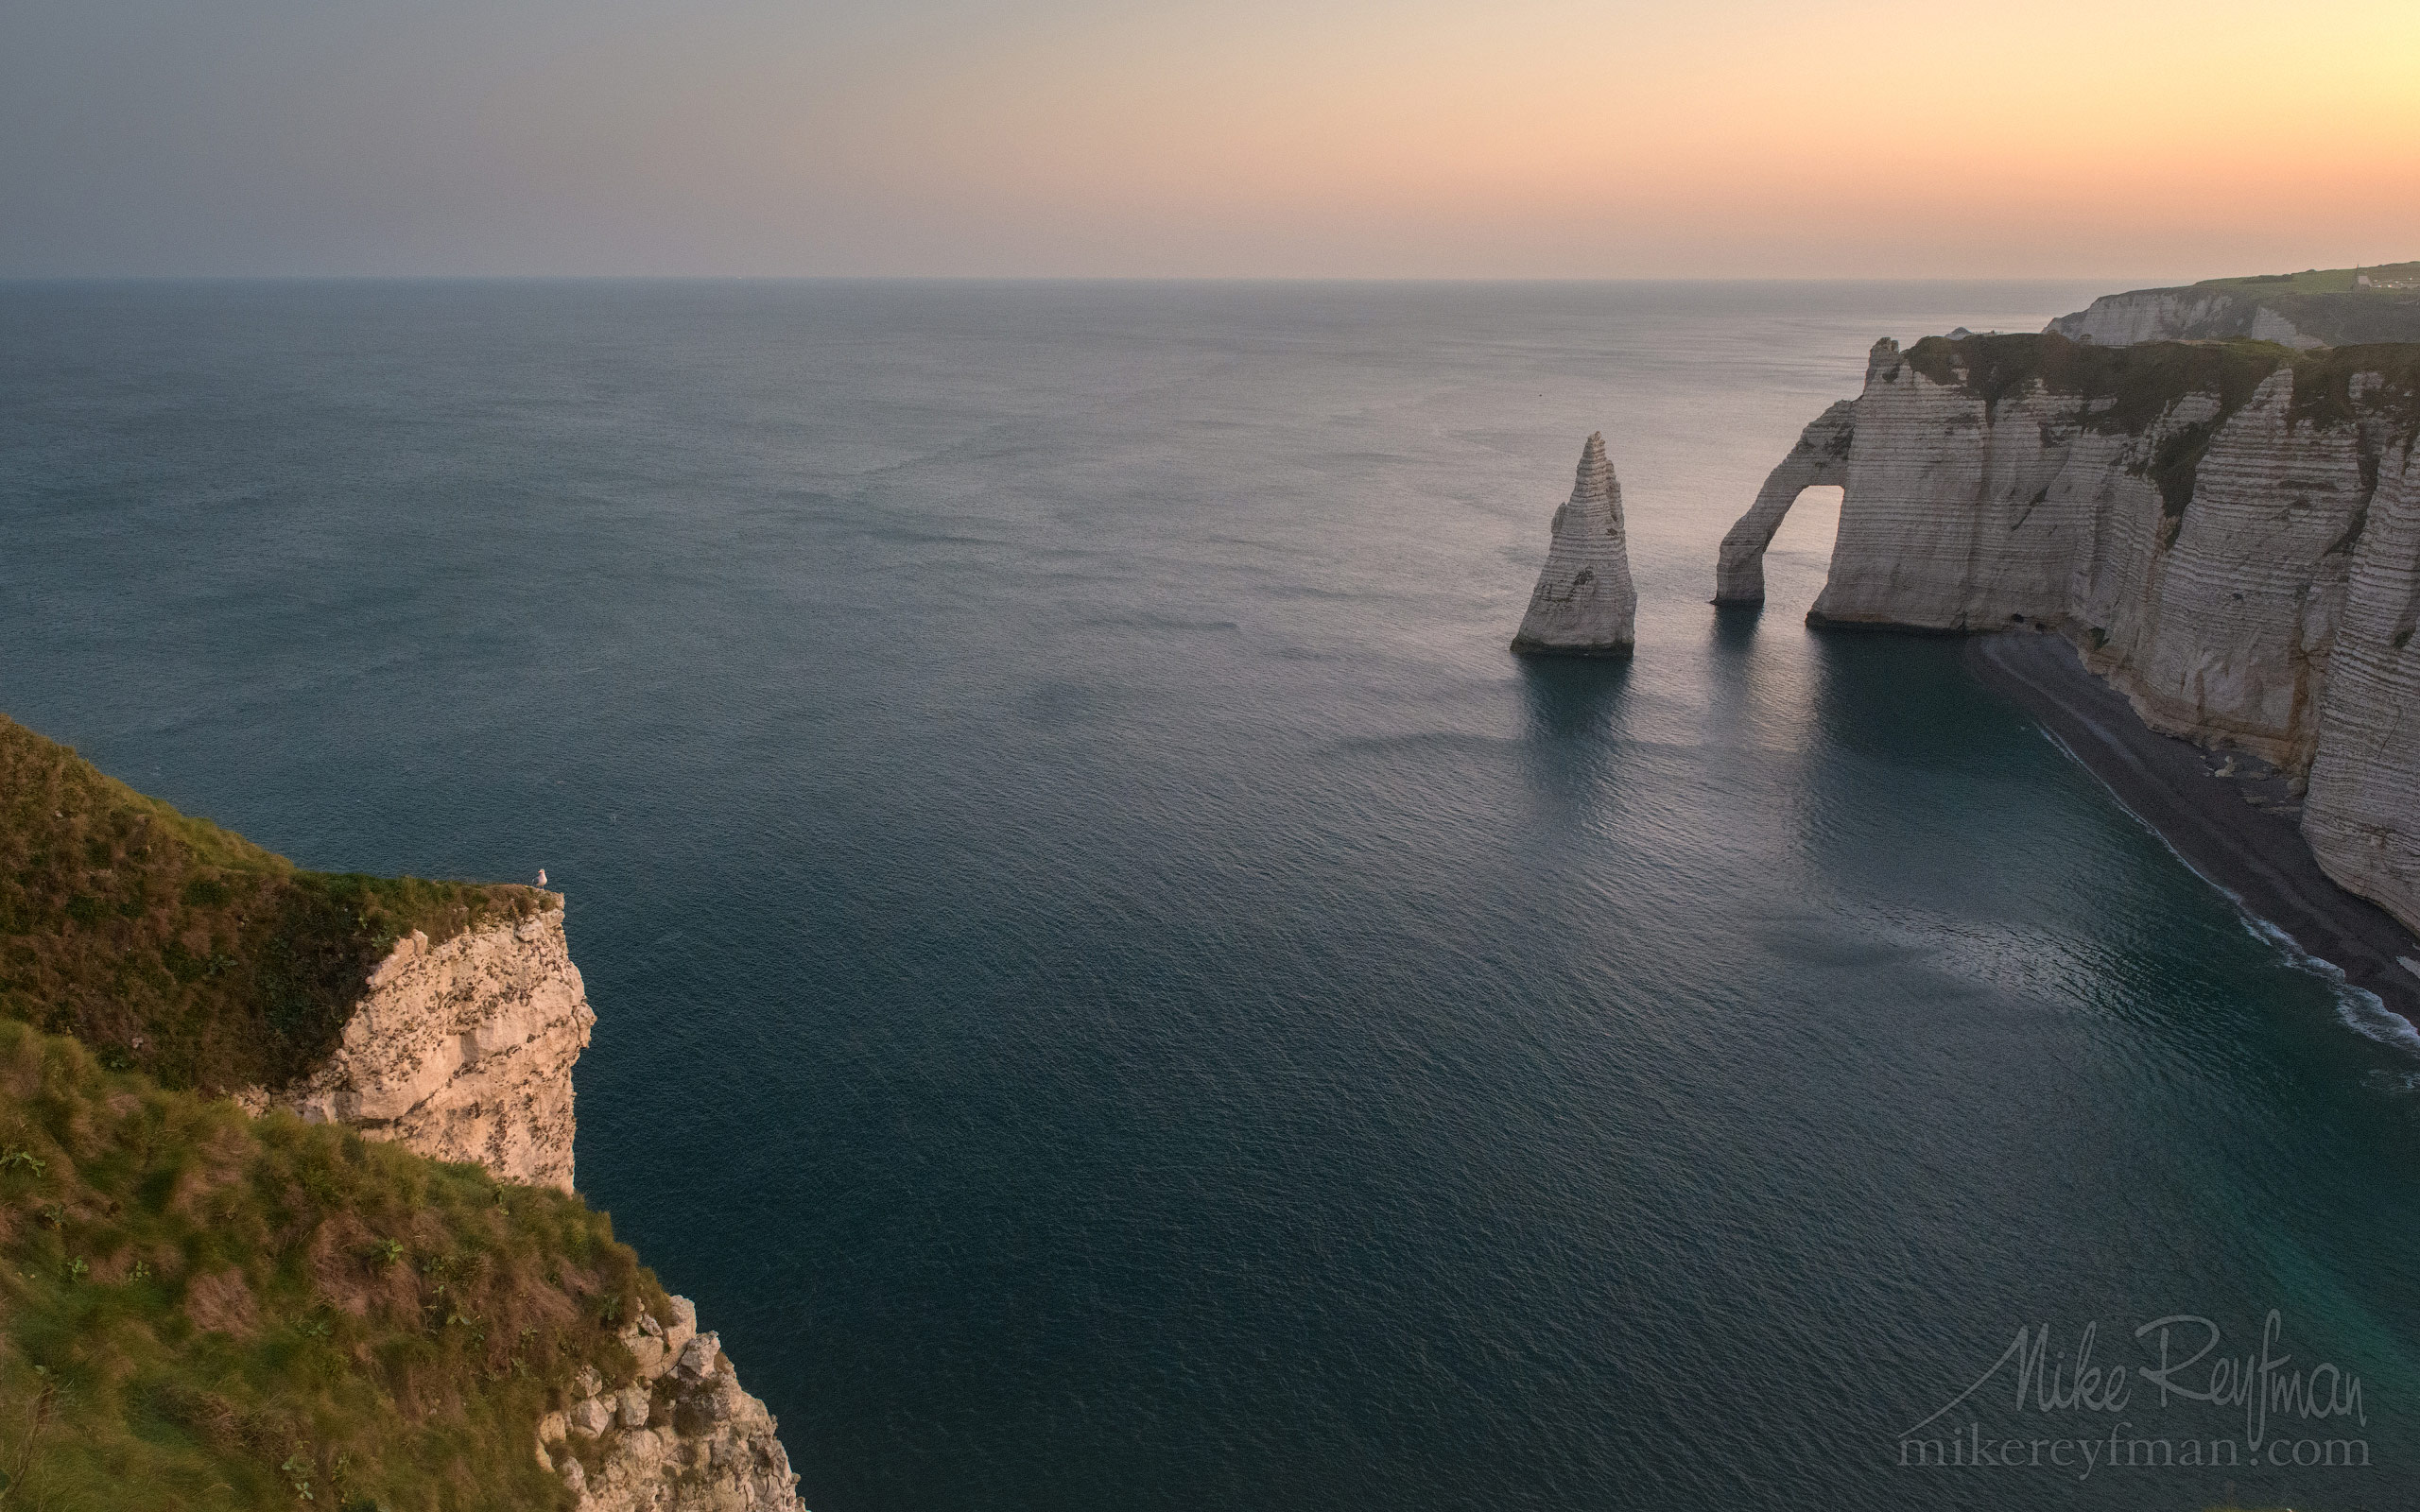 Arch Porte d'Aval and L'Aiguille - the Needle. Cote d'Albatre – The Alabaster Coast. Ertretat, Normandy, France ET1-MR50A0147 - White Chalk Cliffs and Arches of Alabaster Coast. Etretat, Upper Normandy, France - Mike Reyfman Photography